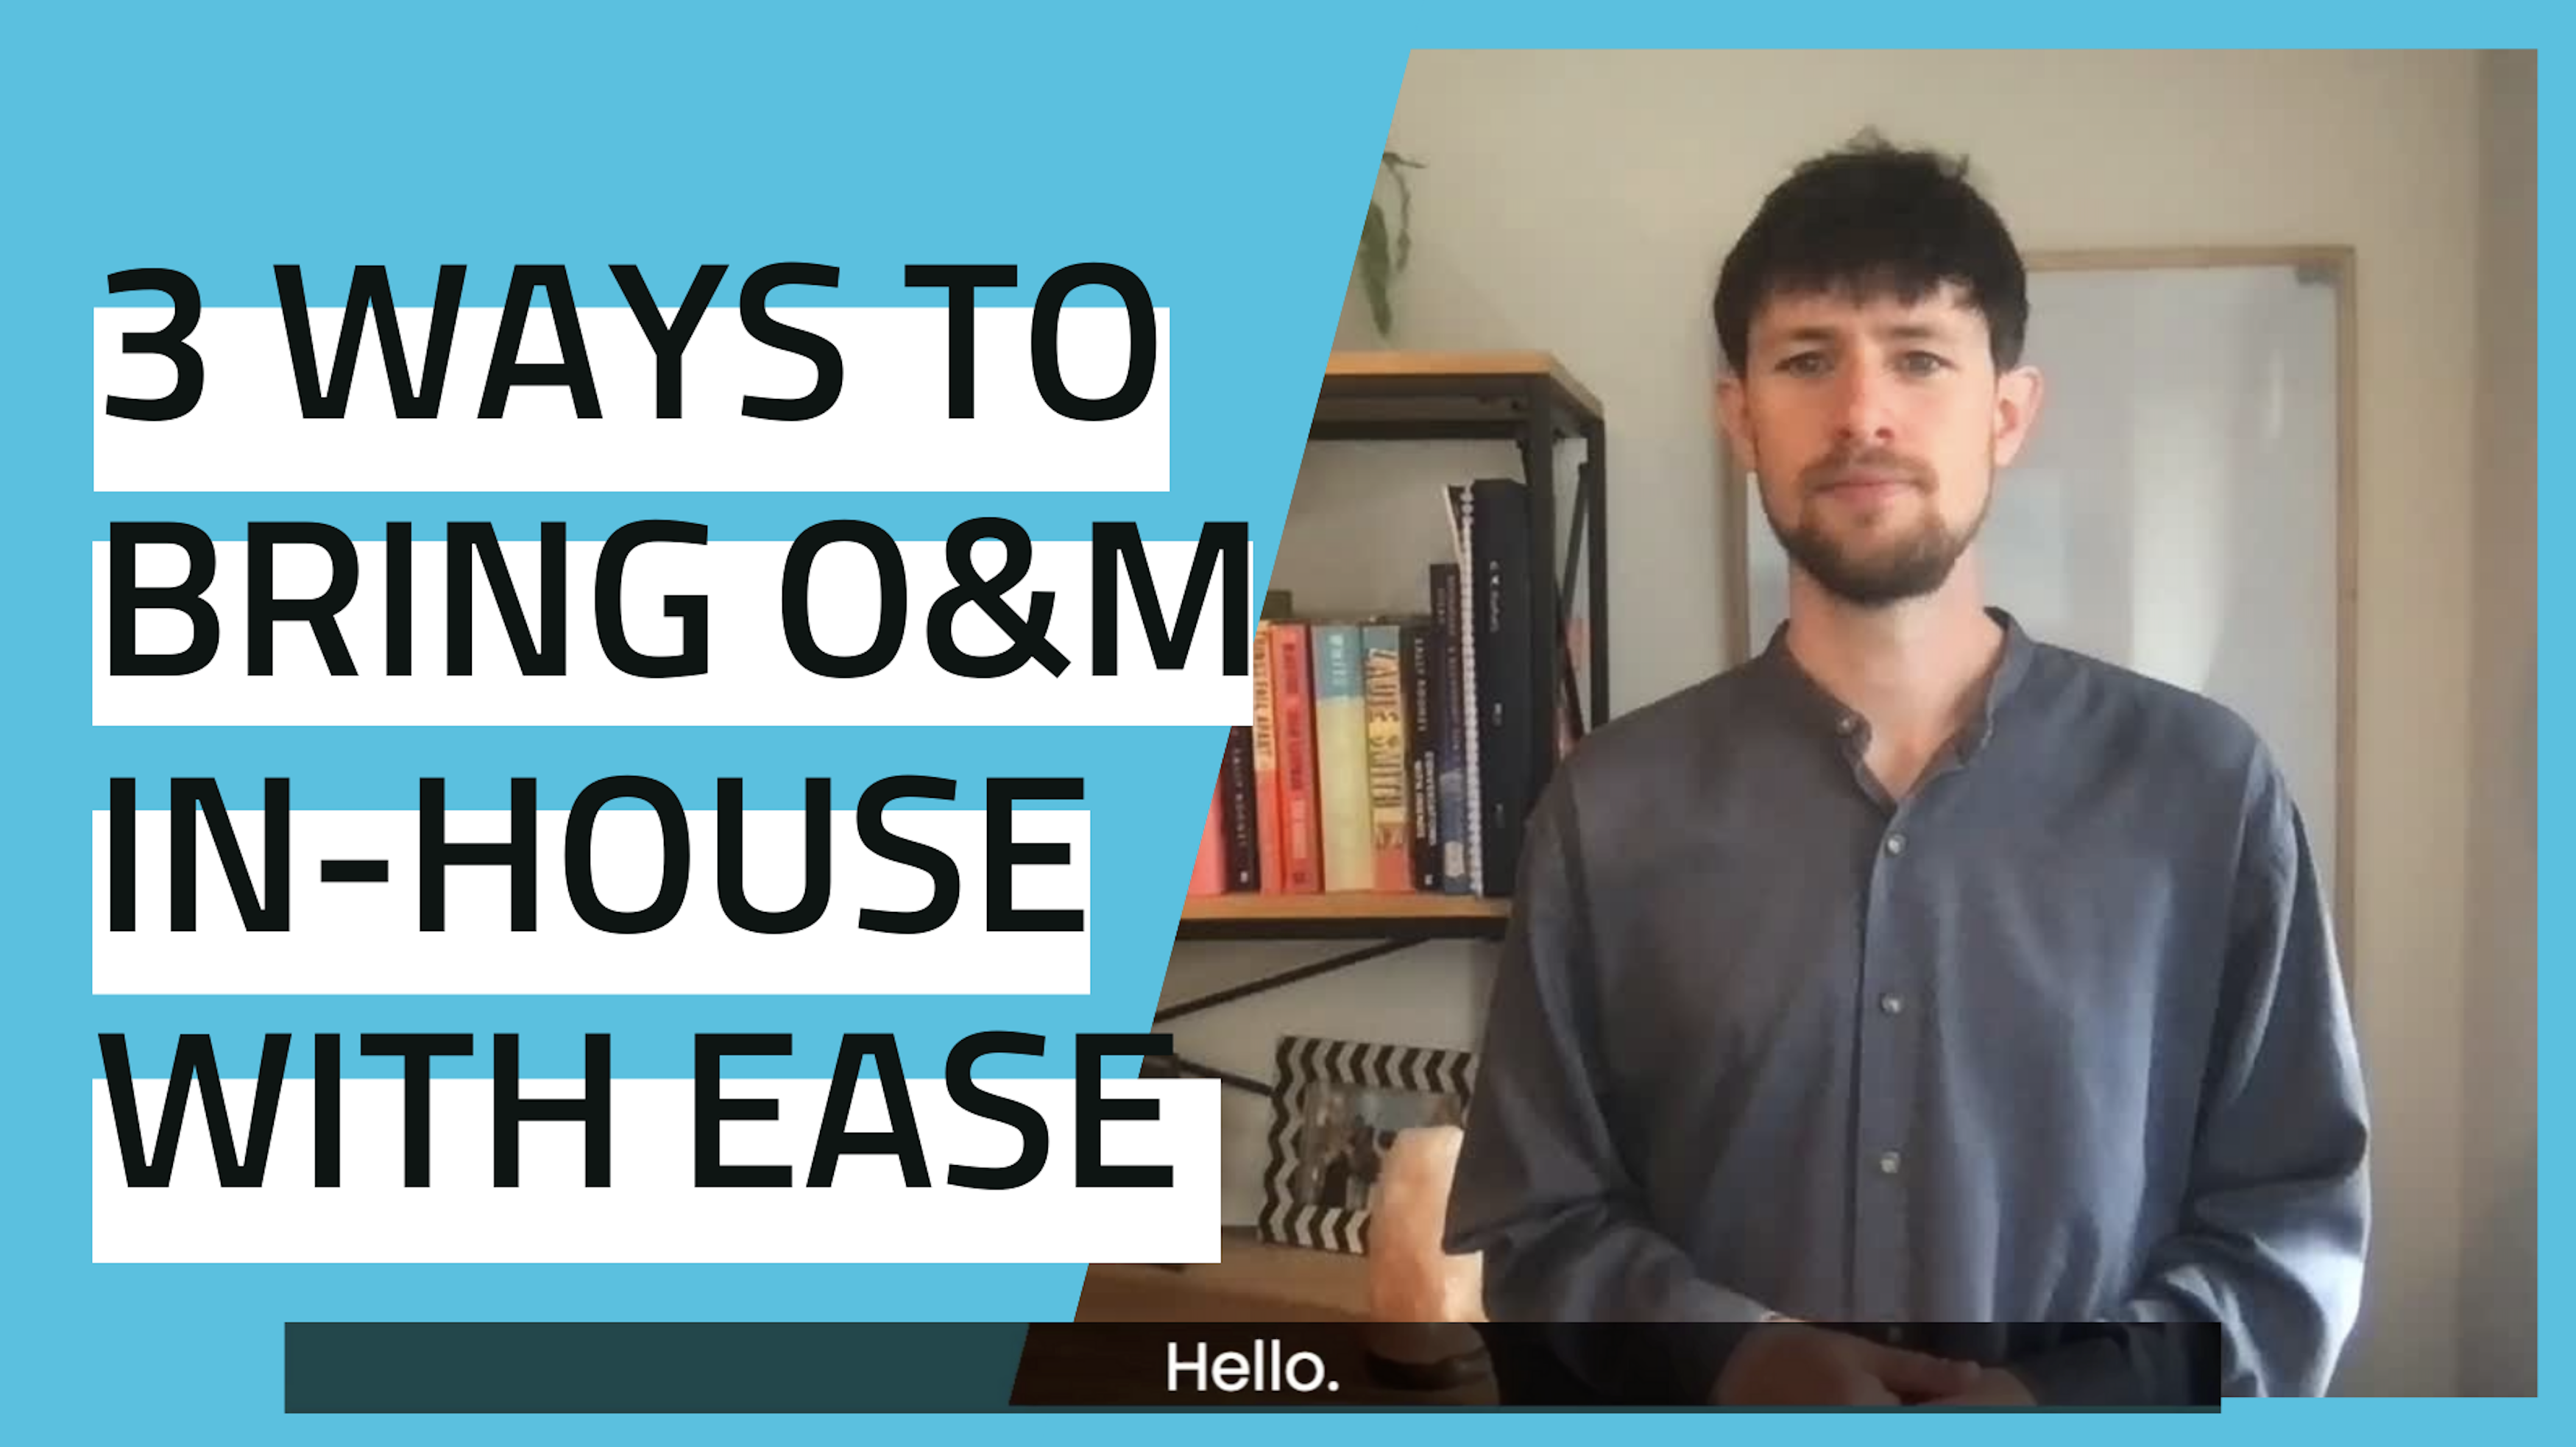 Three Ways to Bring O&M in-House with Ease